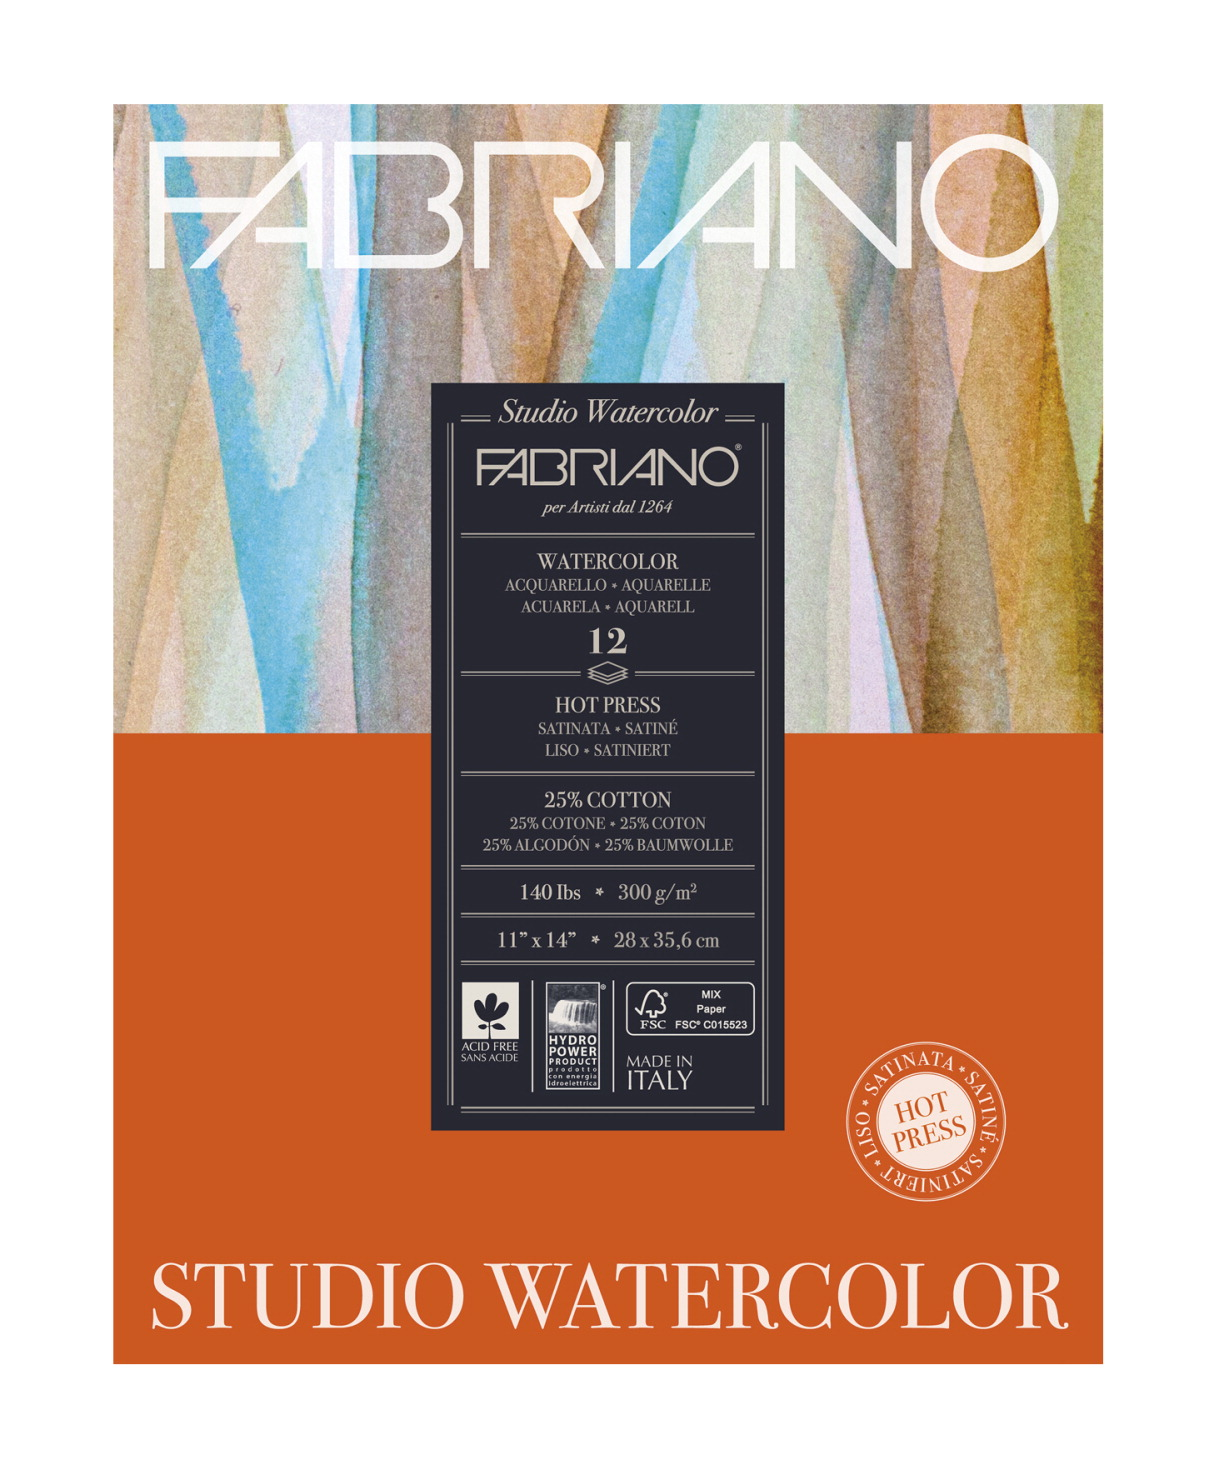 Fabriano Studio Watercolor Hot Press Pad, 11 x 14 Inches, 140 lb, 12 sheets